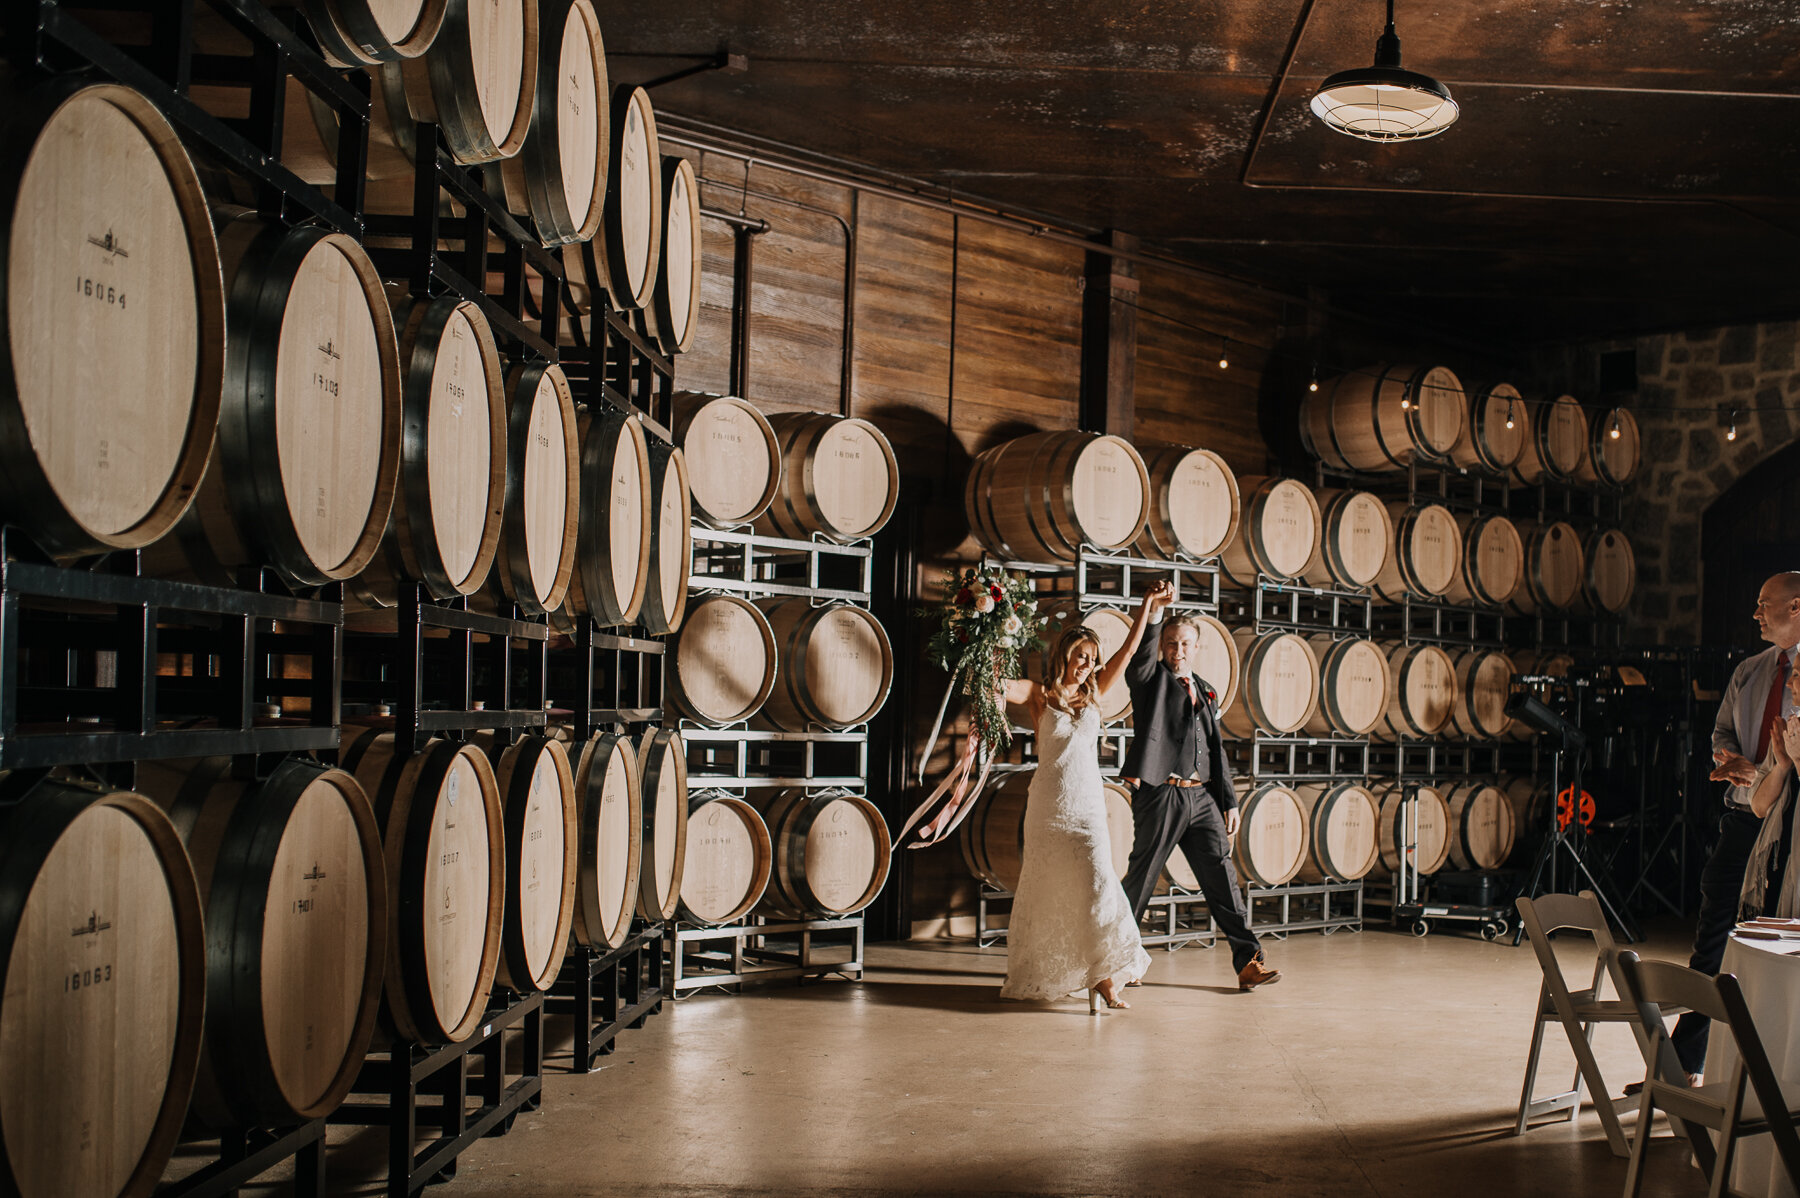 1007Swiftwater Cellars Wedding_Cle Elum Wedding_Montana Wedding Photographer_Kat & Kyle_September 15, 2018-289.jpg